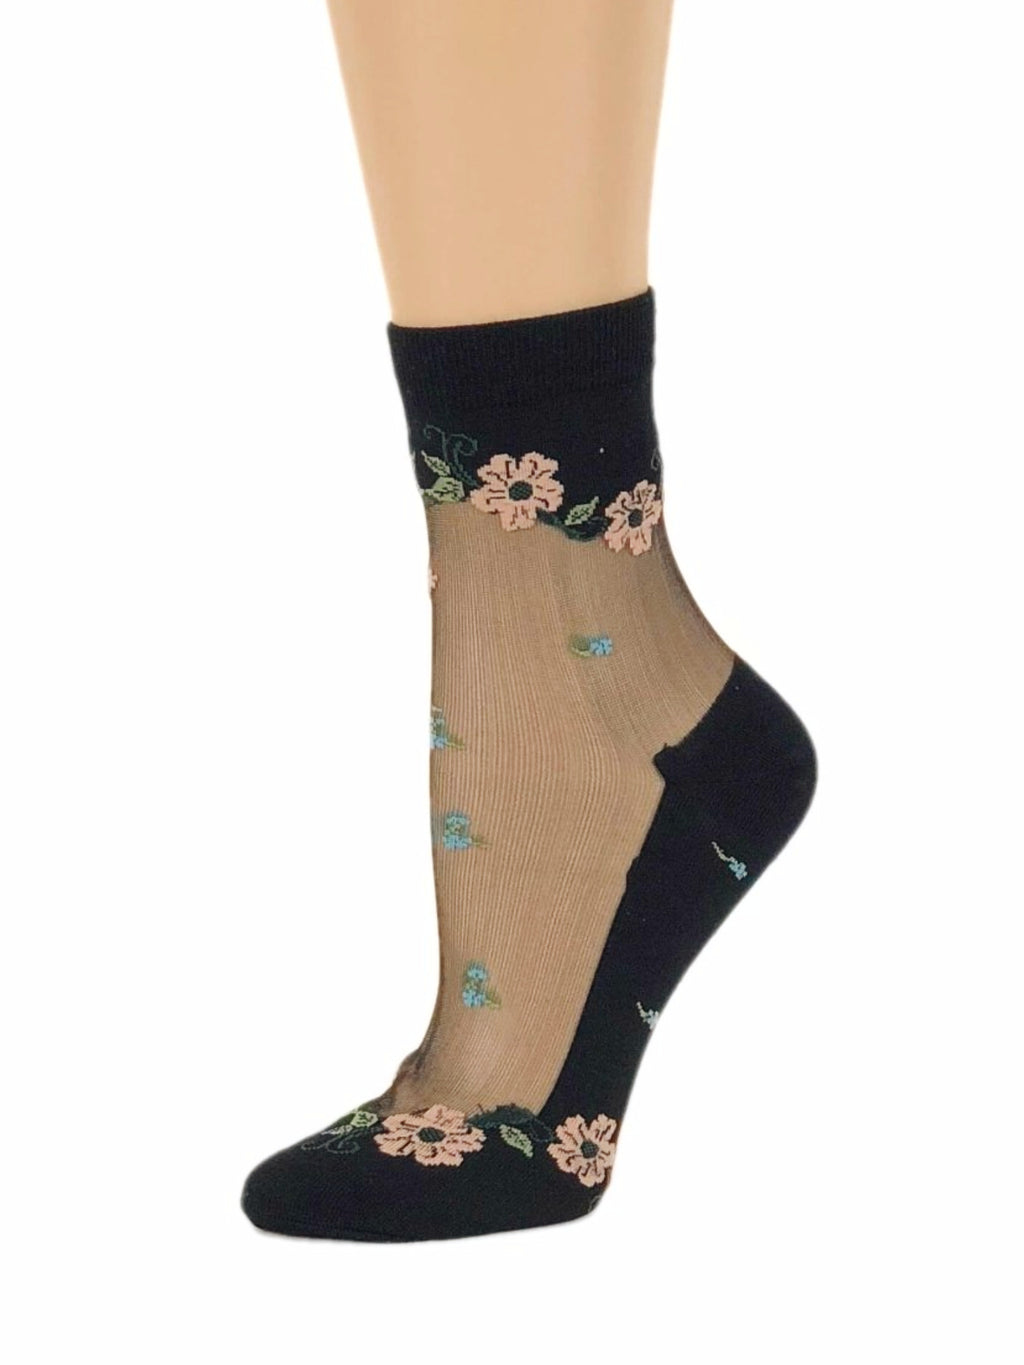 Frenzy Floral Sheer Socks - Global Trendz Fashion®